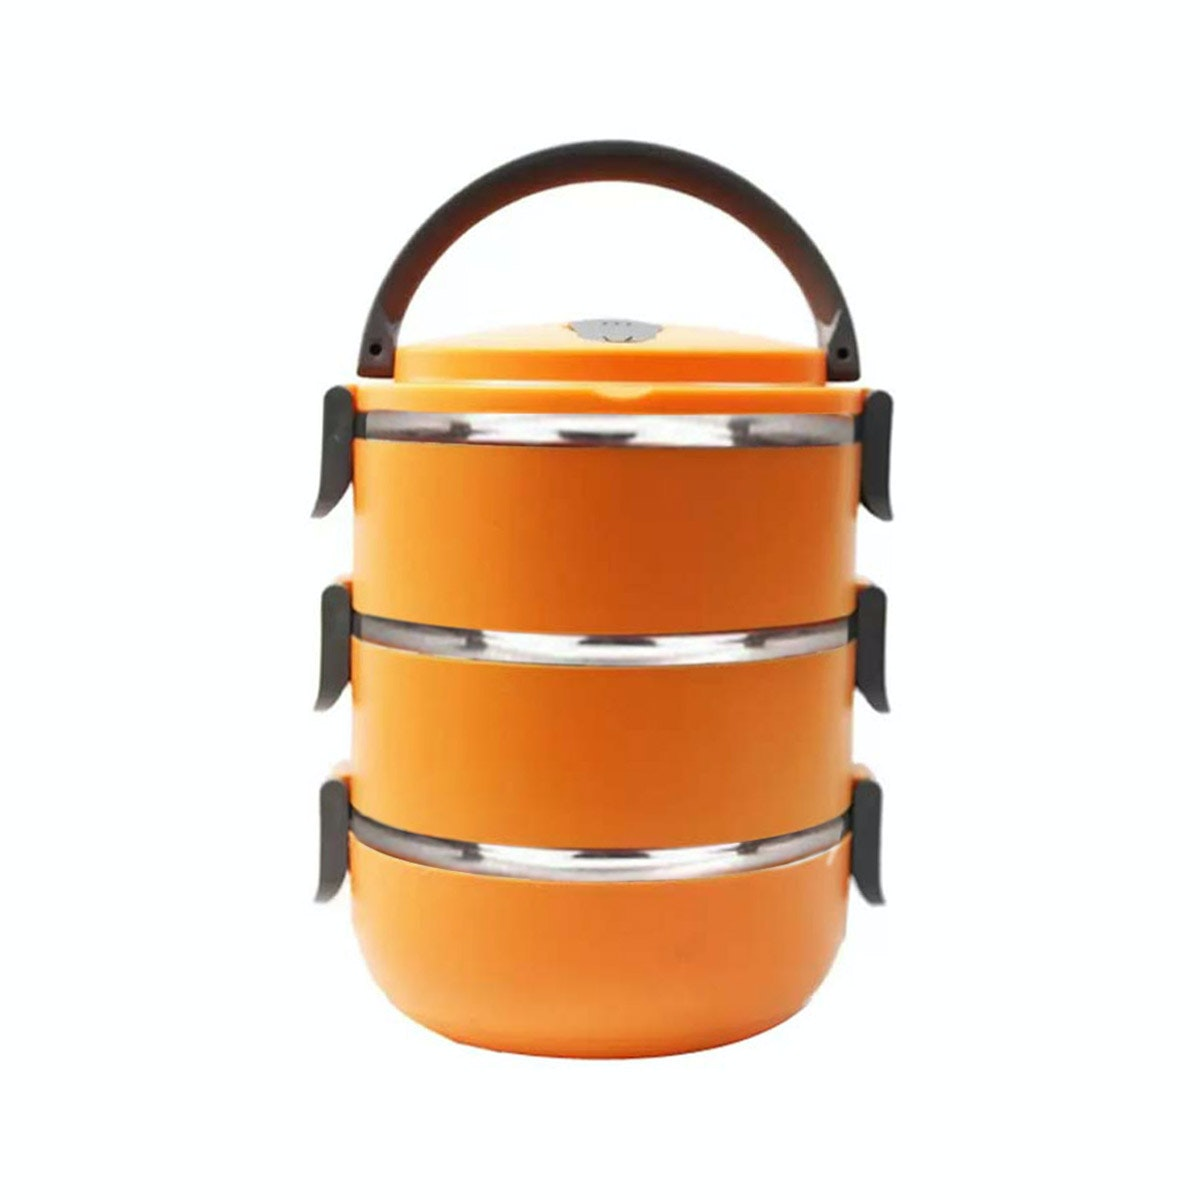 StarHome Rantang 3 Susun - Kotak Makan Stainless Steel - Lunch Box 2100 ml - Orange